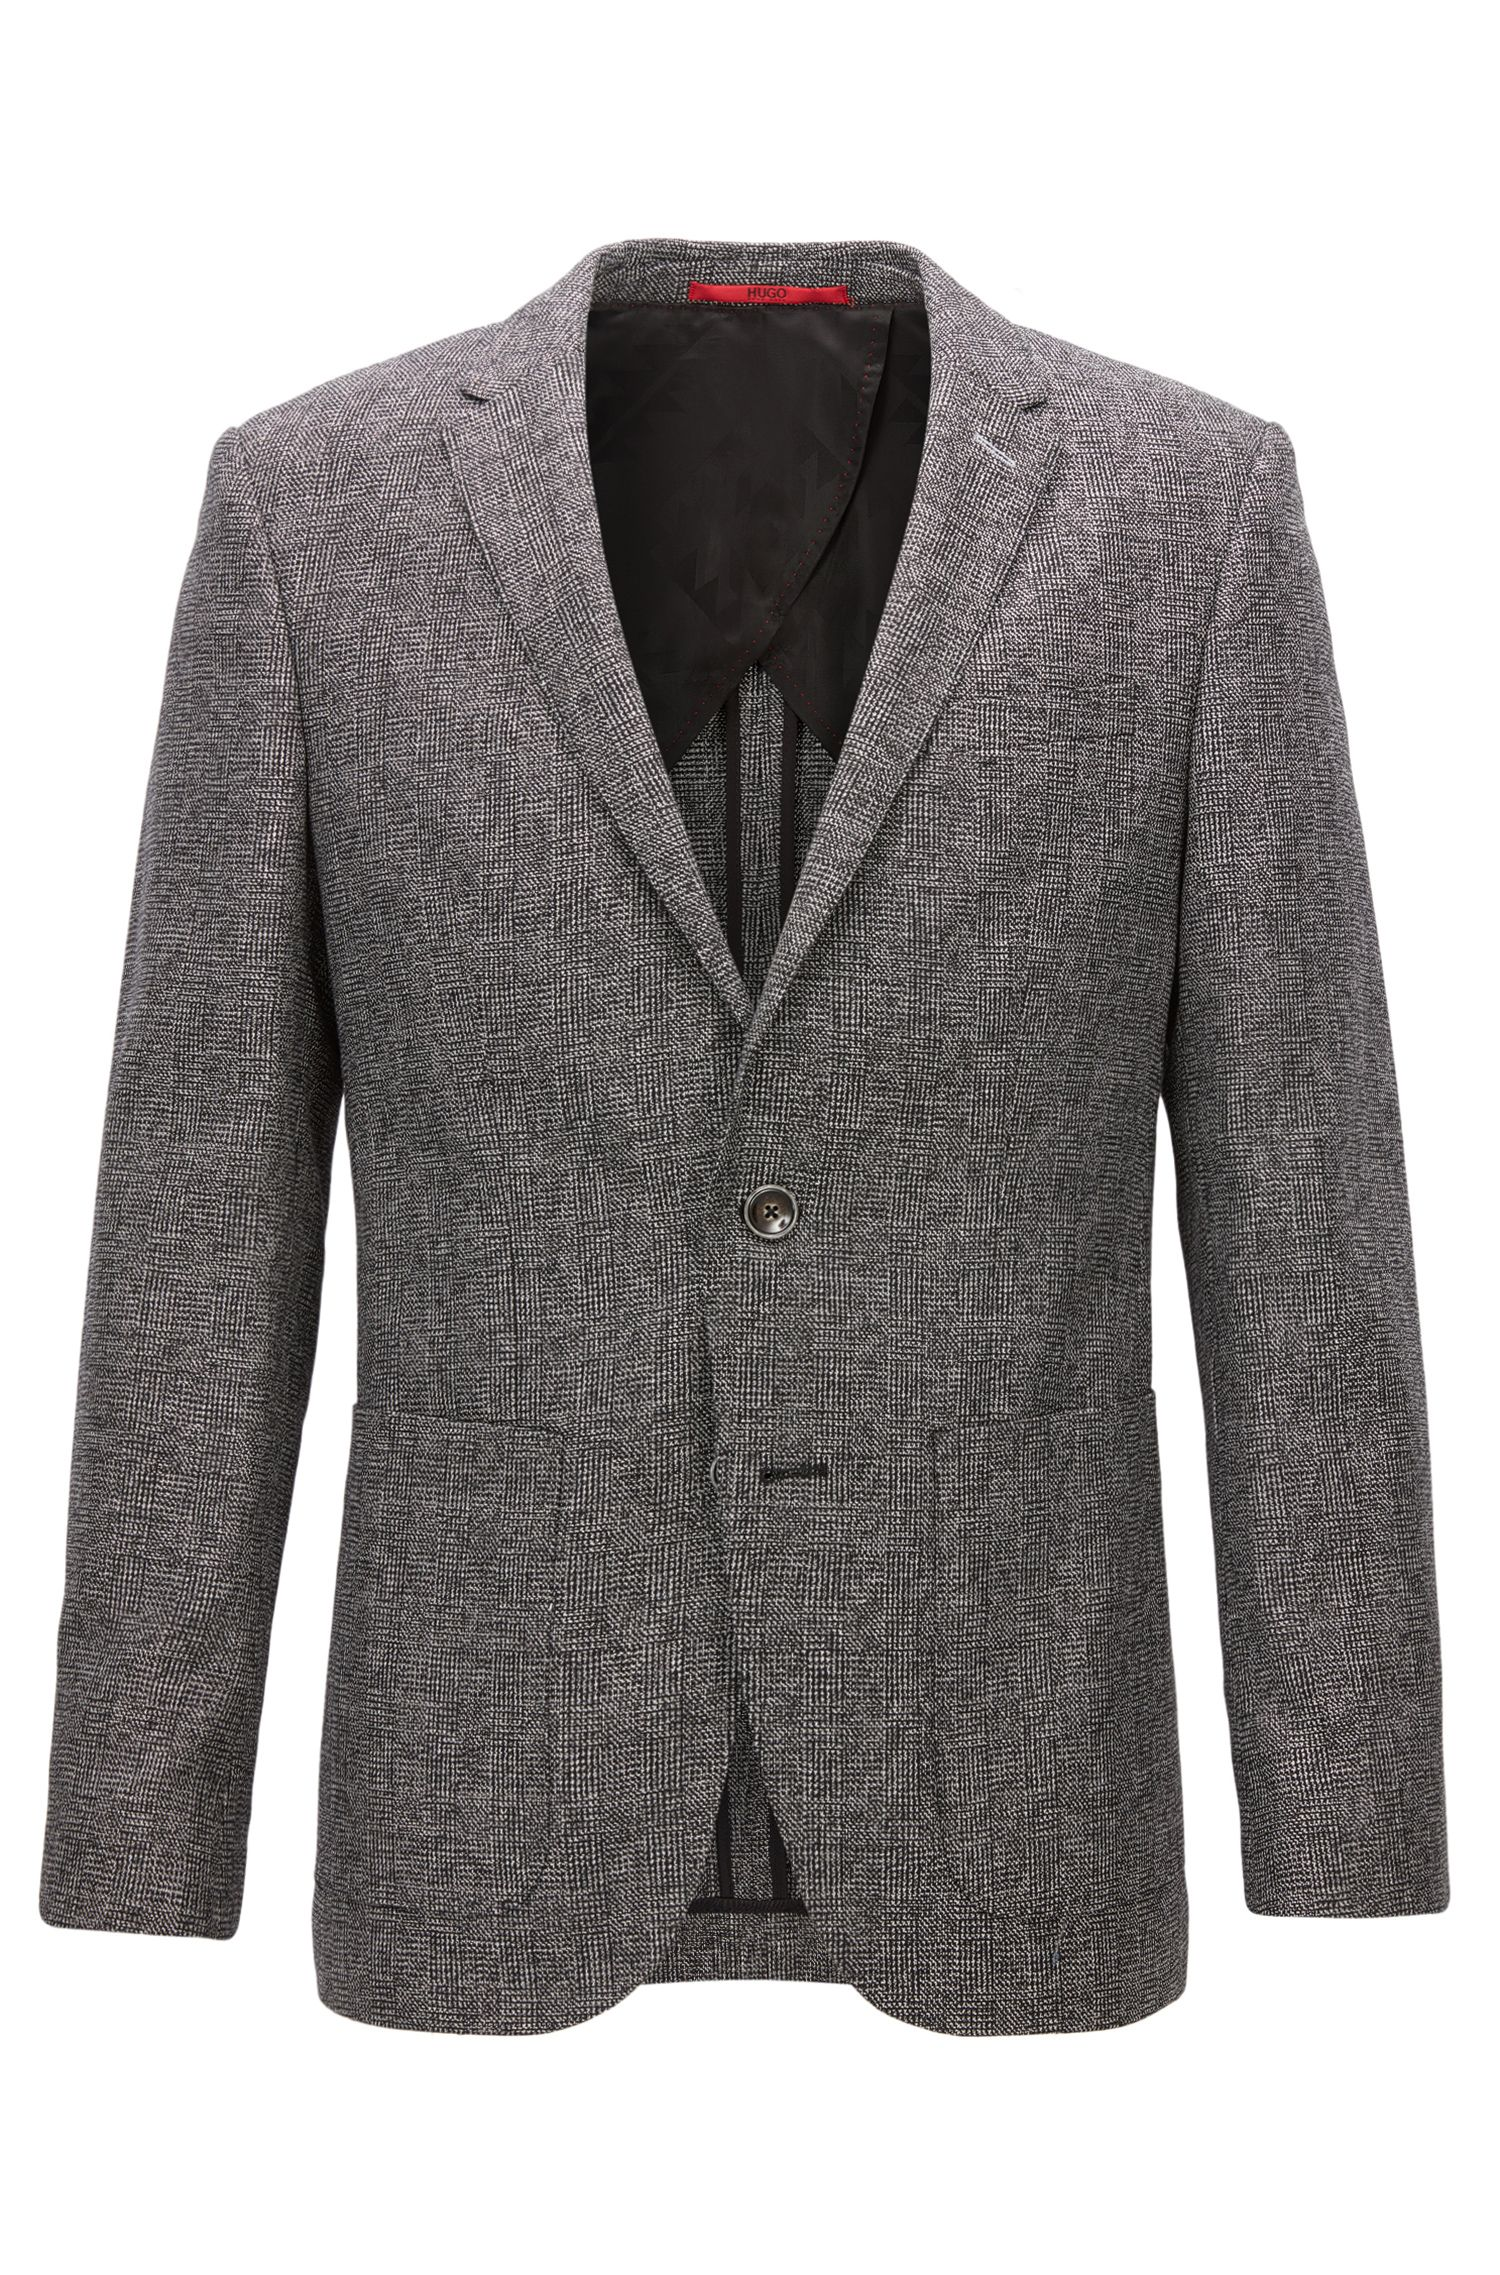 Slim-fit jacket in a micro-check fabric